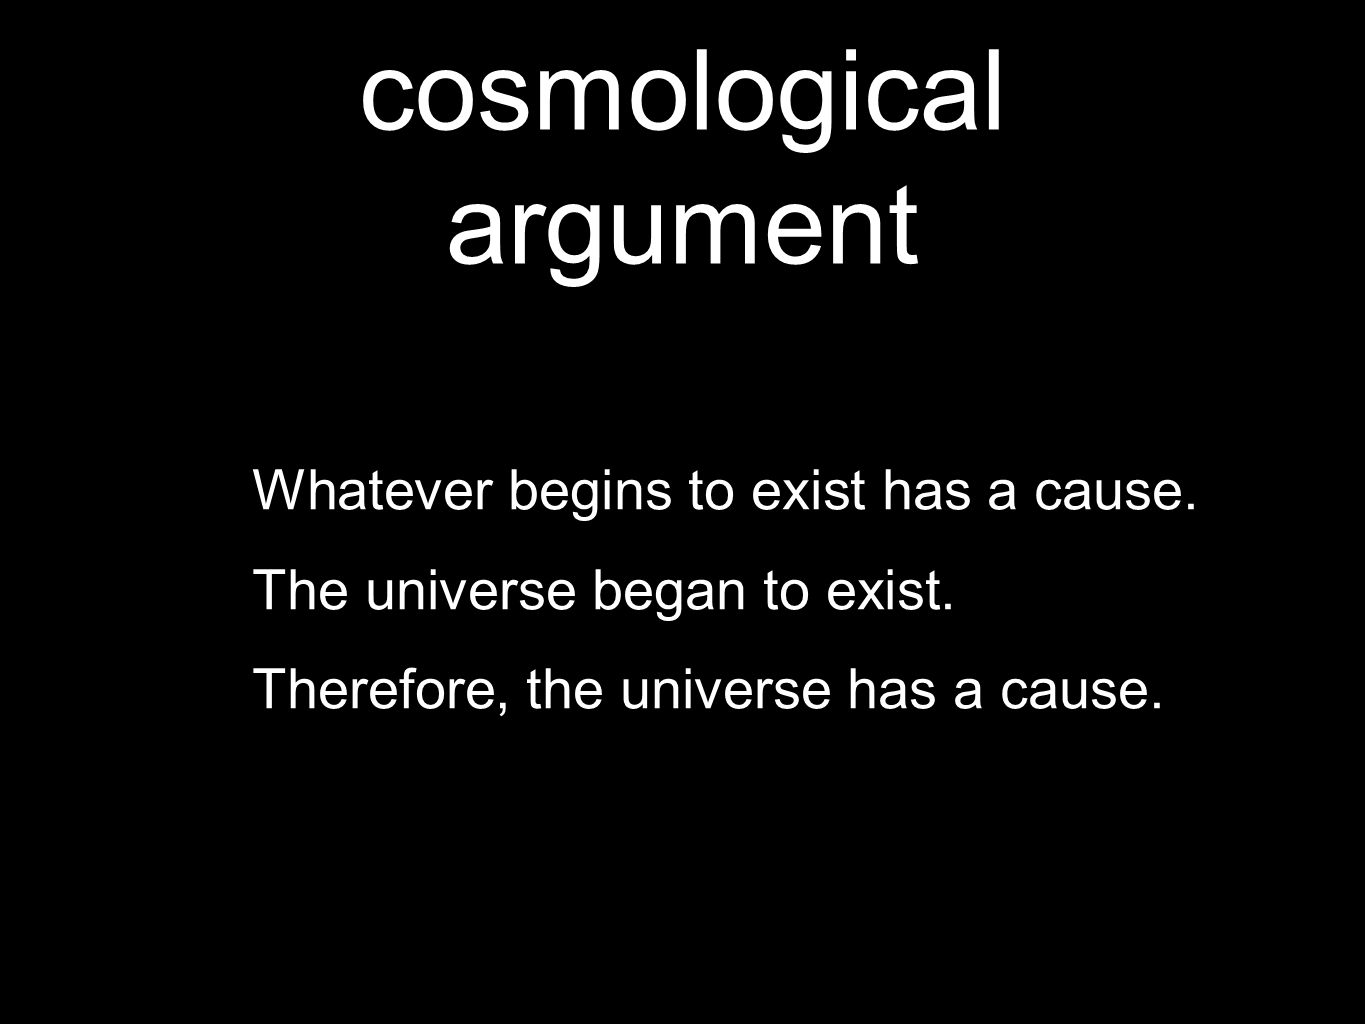 cosmological argument Whatever begins to exist has a cause.